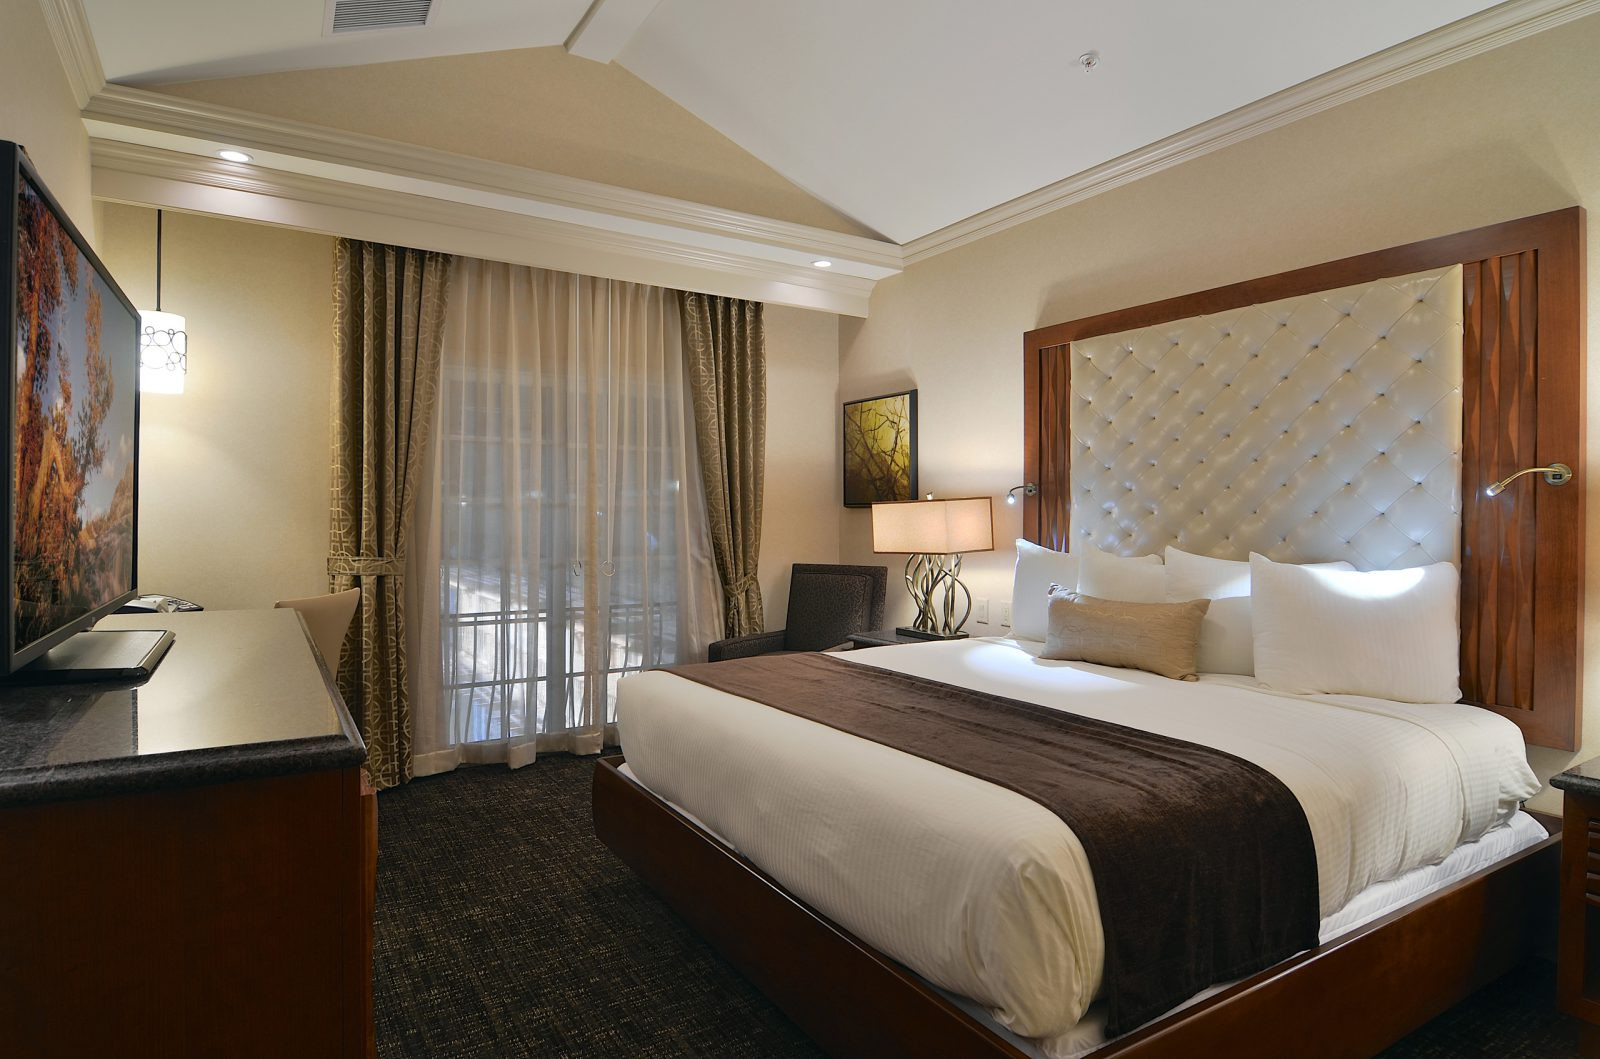 Best ideas about 2 Bedroom Suites . Save or Pin Hotel Rooms With Two Bedrooms Now.